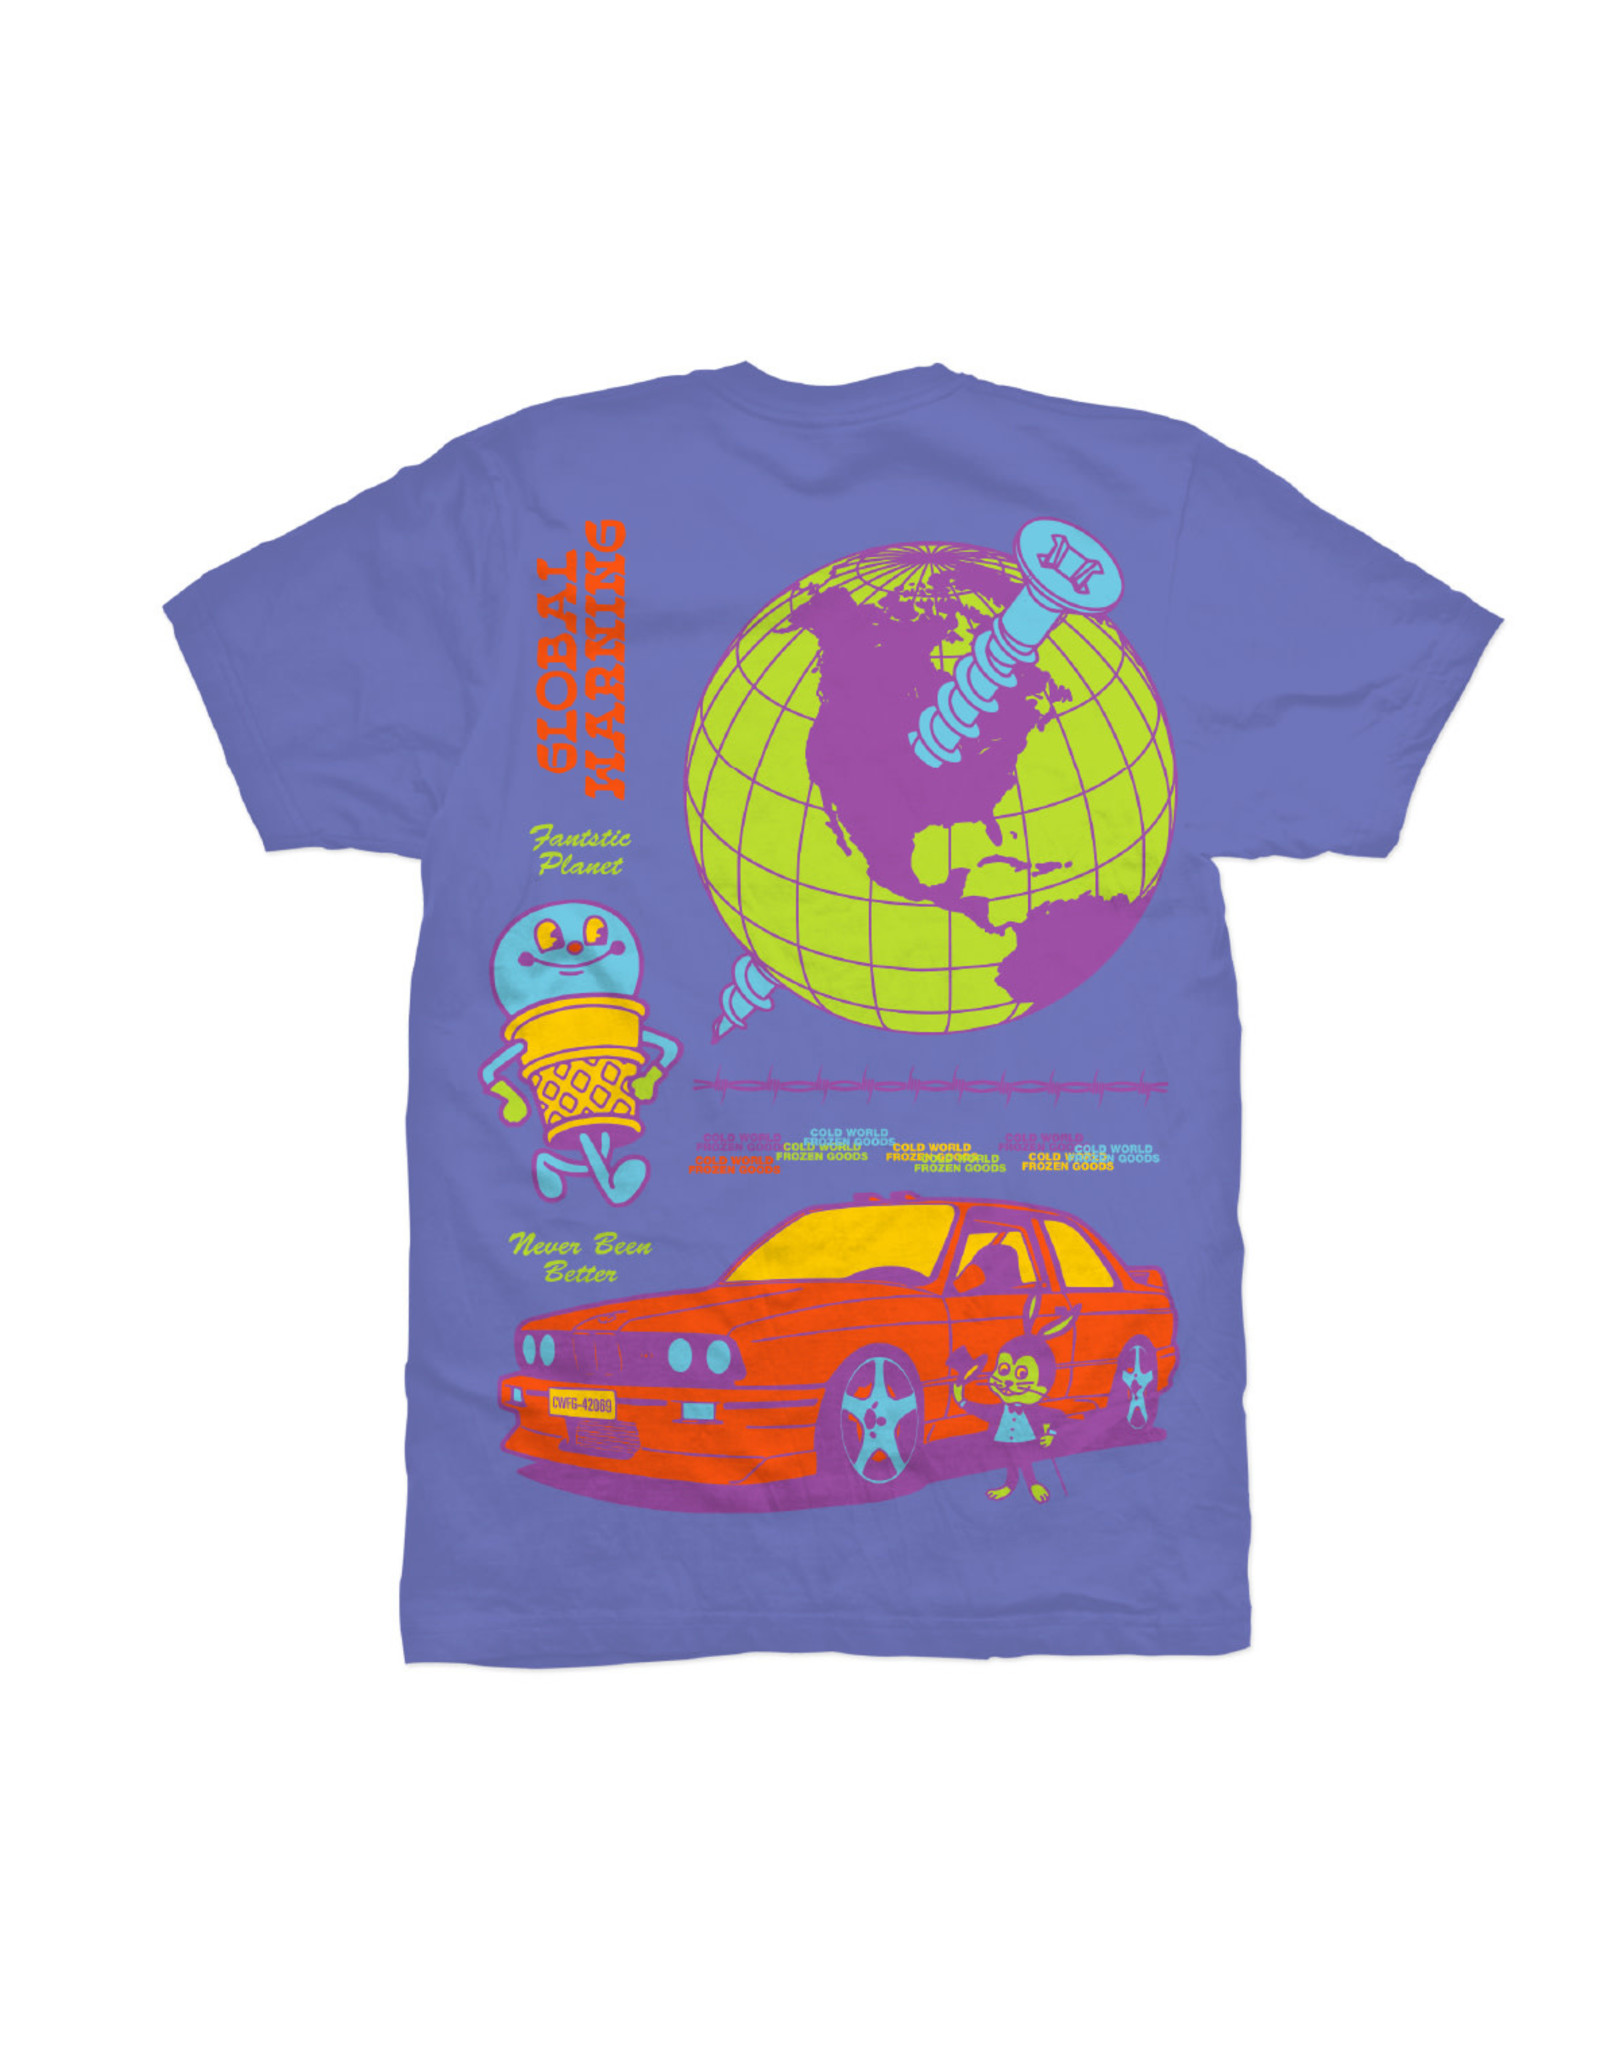 COLD WORLD COLD WORLD FROZEN GOODS GLOBAL WARNING TEE SHIRT